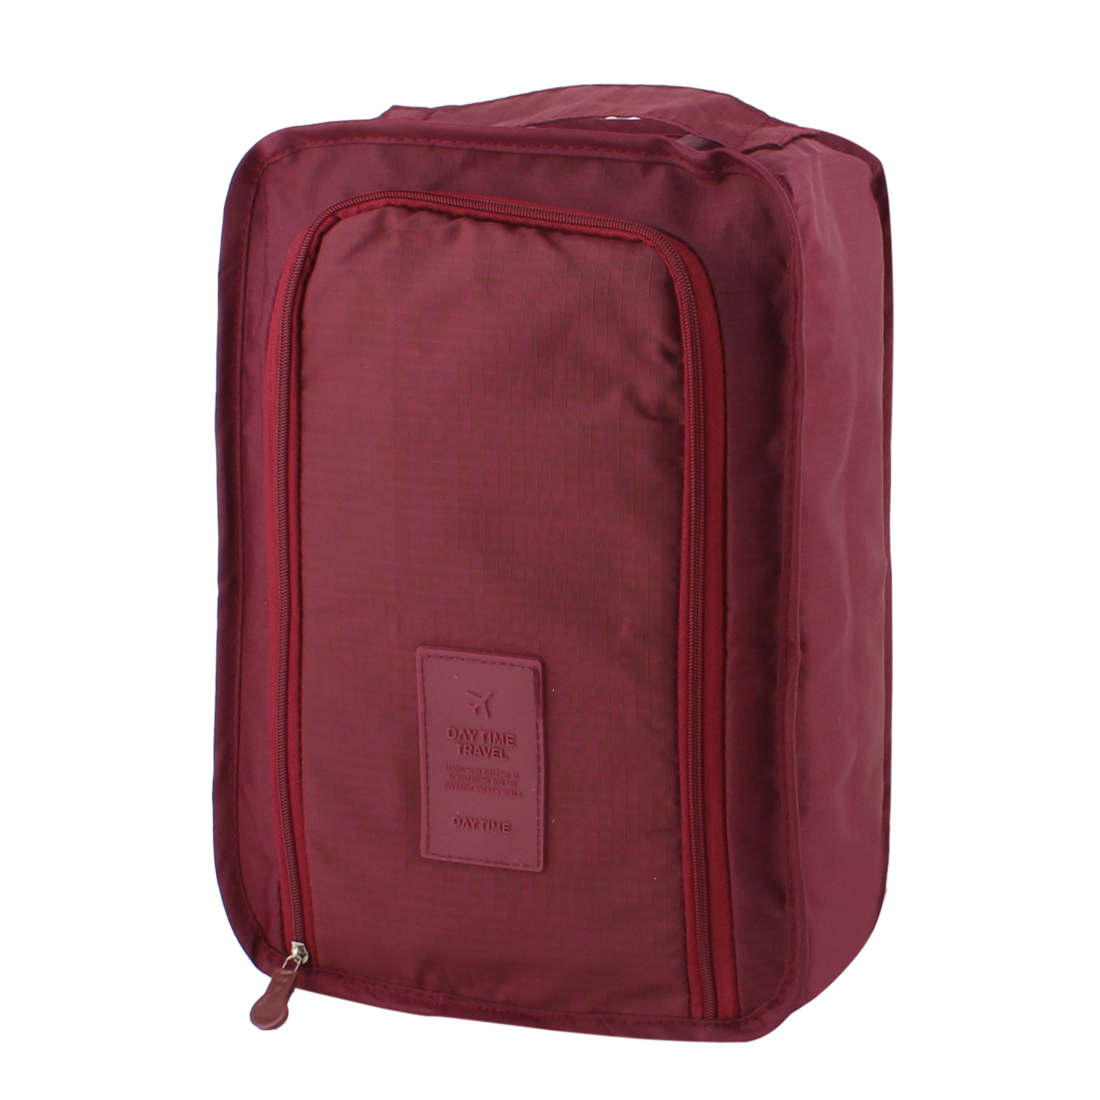 Burgundy Portable Water Resistant Shoes Storage Folding Pouch Bag Case Organizer Keeper